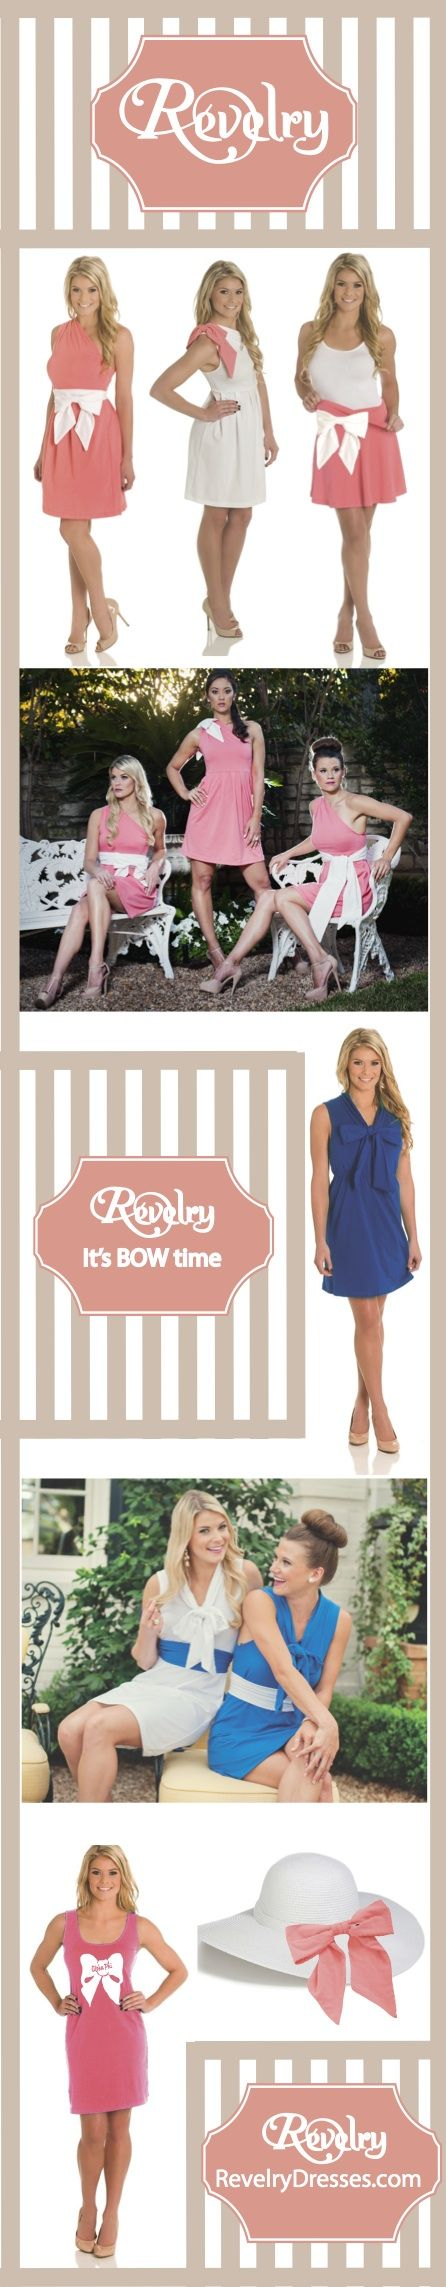 Sorority Bows and Recruitment Outfits! On trend sorority dresses for the perfectly proper chapter! On trend Recruitment Dresses!